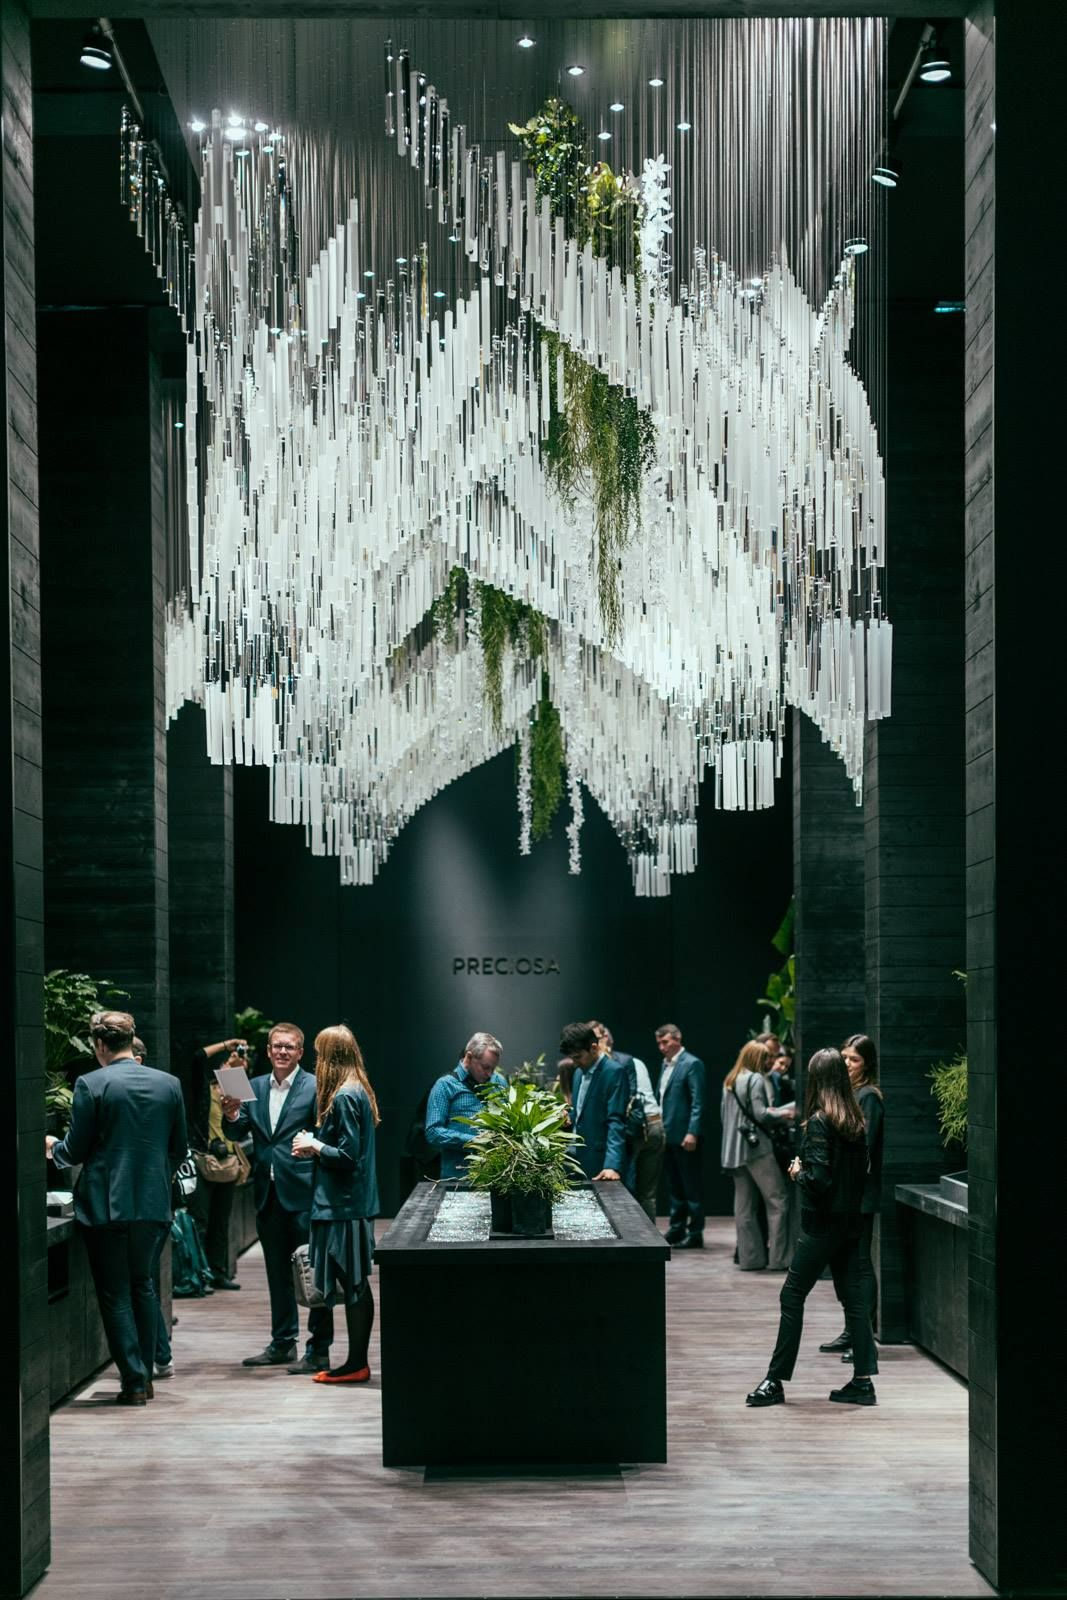 Preciosa lighting cultivation of chandeliers since 1724 at preciosa lighting cultivation of chandeliers since 1724 at salone del mobile 2017 aloadofball Gallery